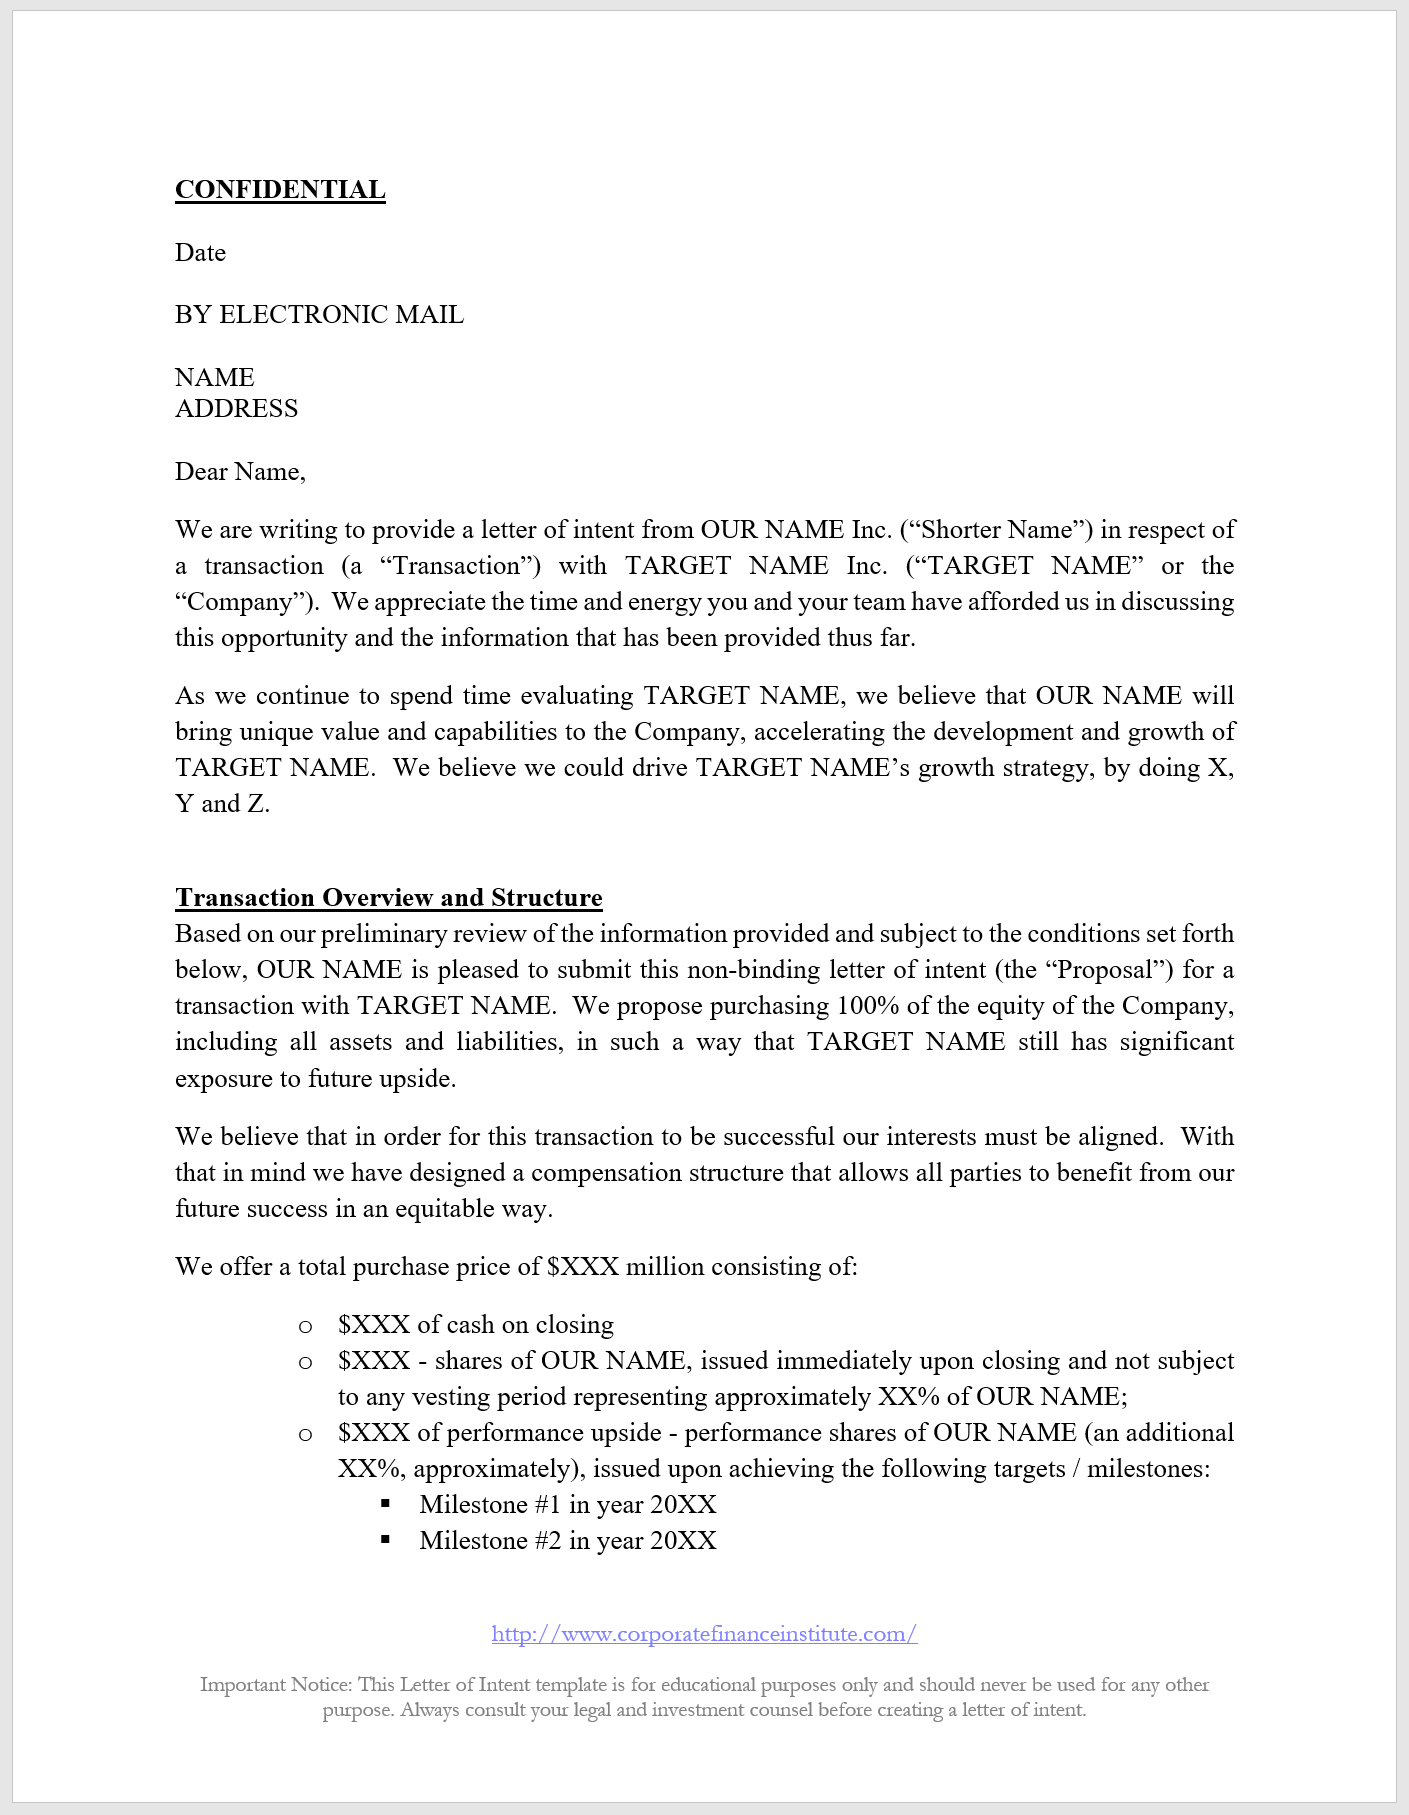 Letter Of Intent Loi Template  All The Key Terms Included In An Loi Intended For Membership Card Terms And Conditions Template